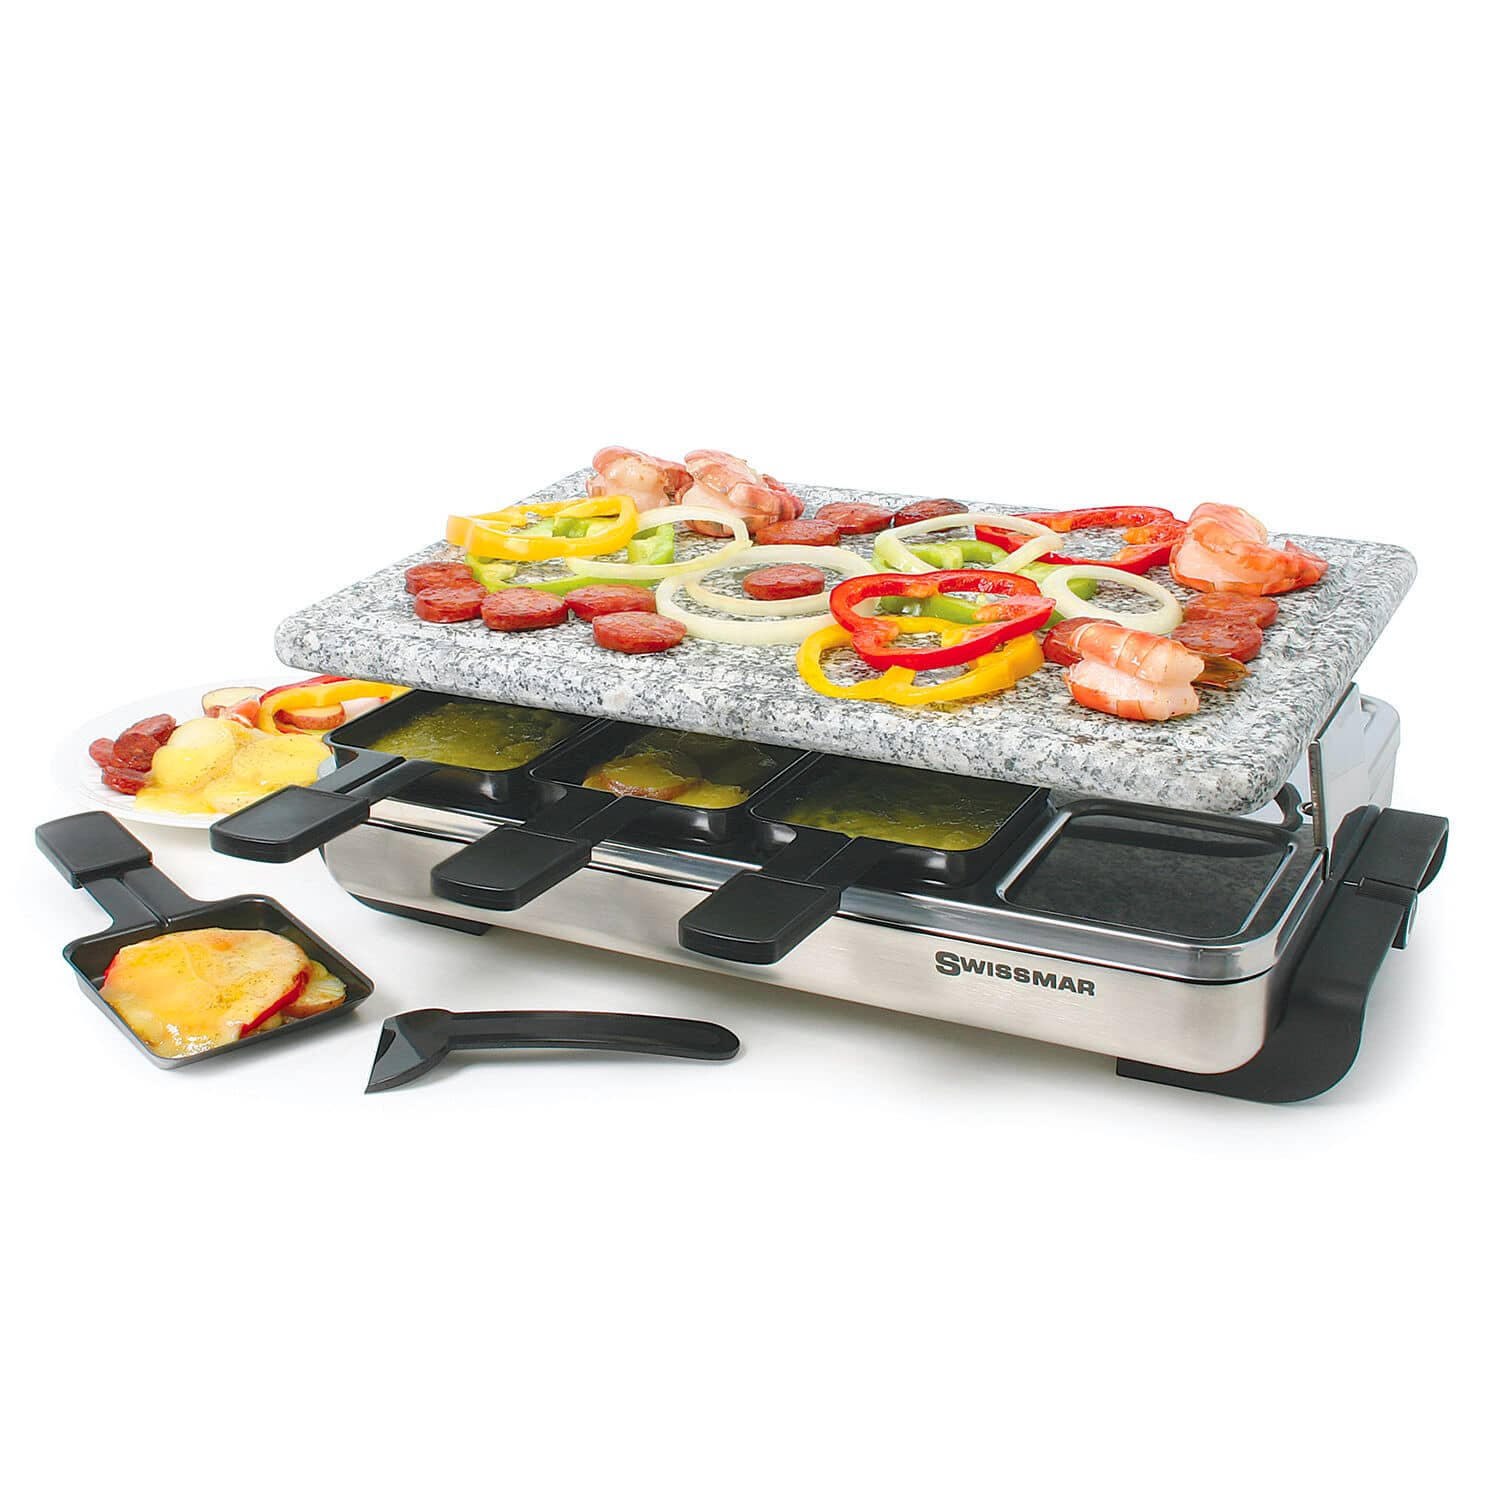 swissmar stelvio raclette granite stone party grill the green head. Black Bedroom Furniture Sets. Home Design Ideas